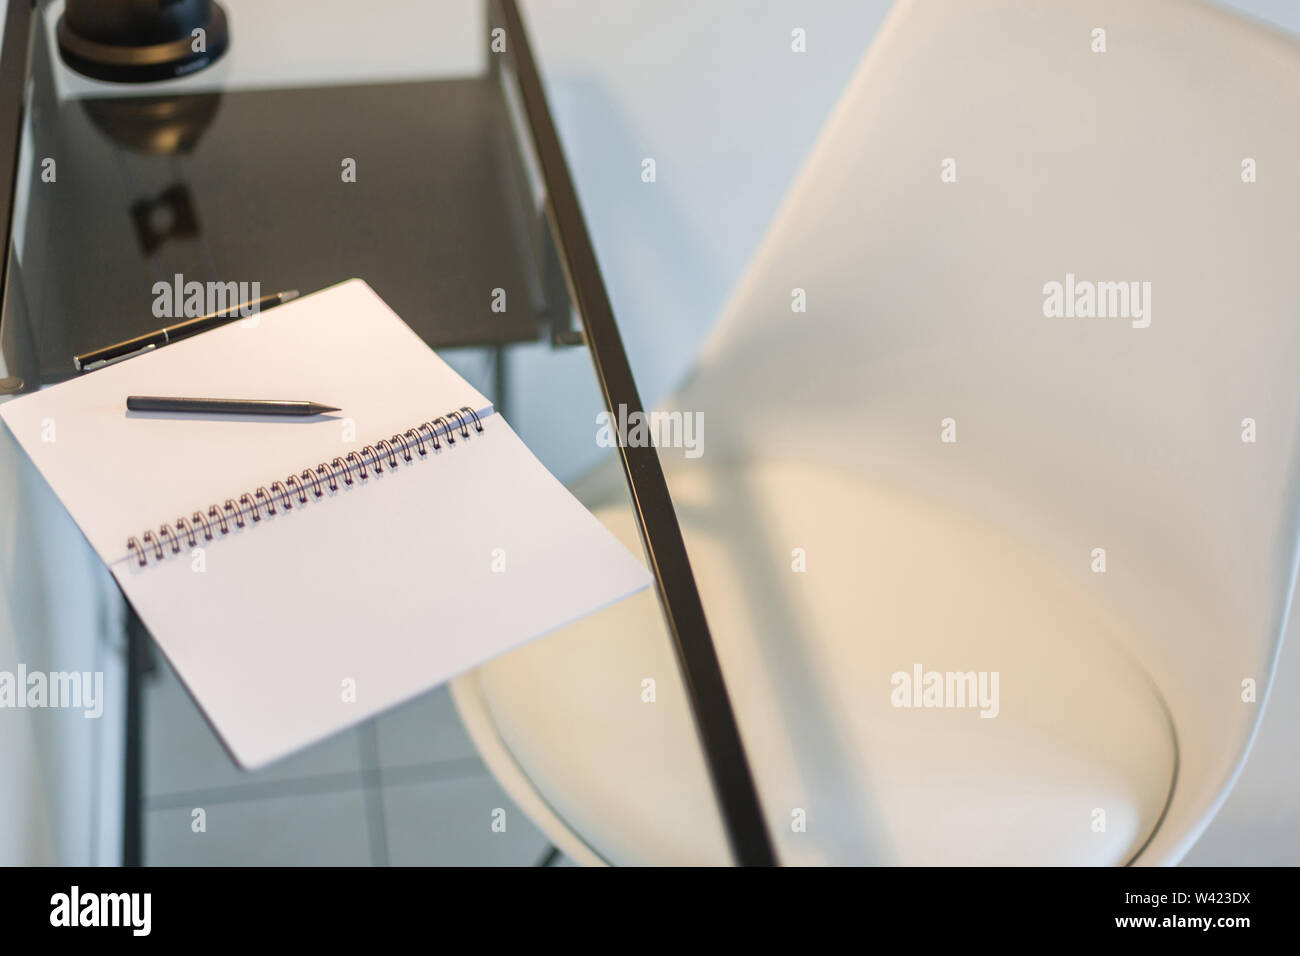 Top view of a stylish white chair and a glass study table with a notebook, pen and pencil kept on it Stock Photo